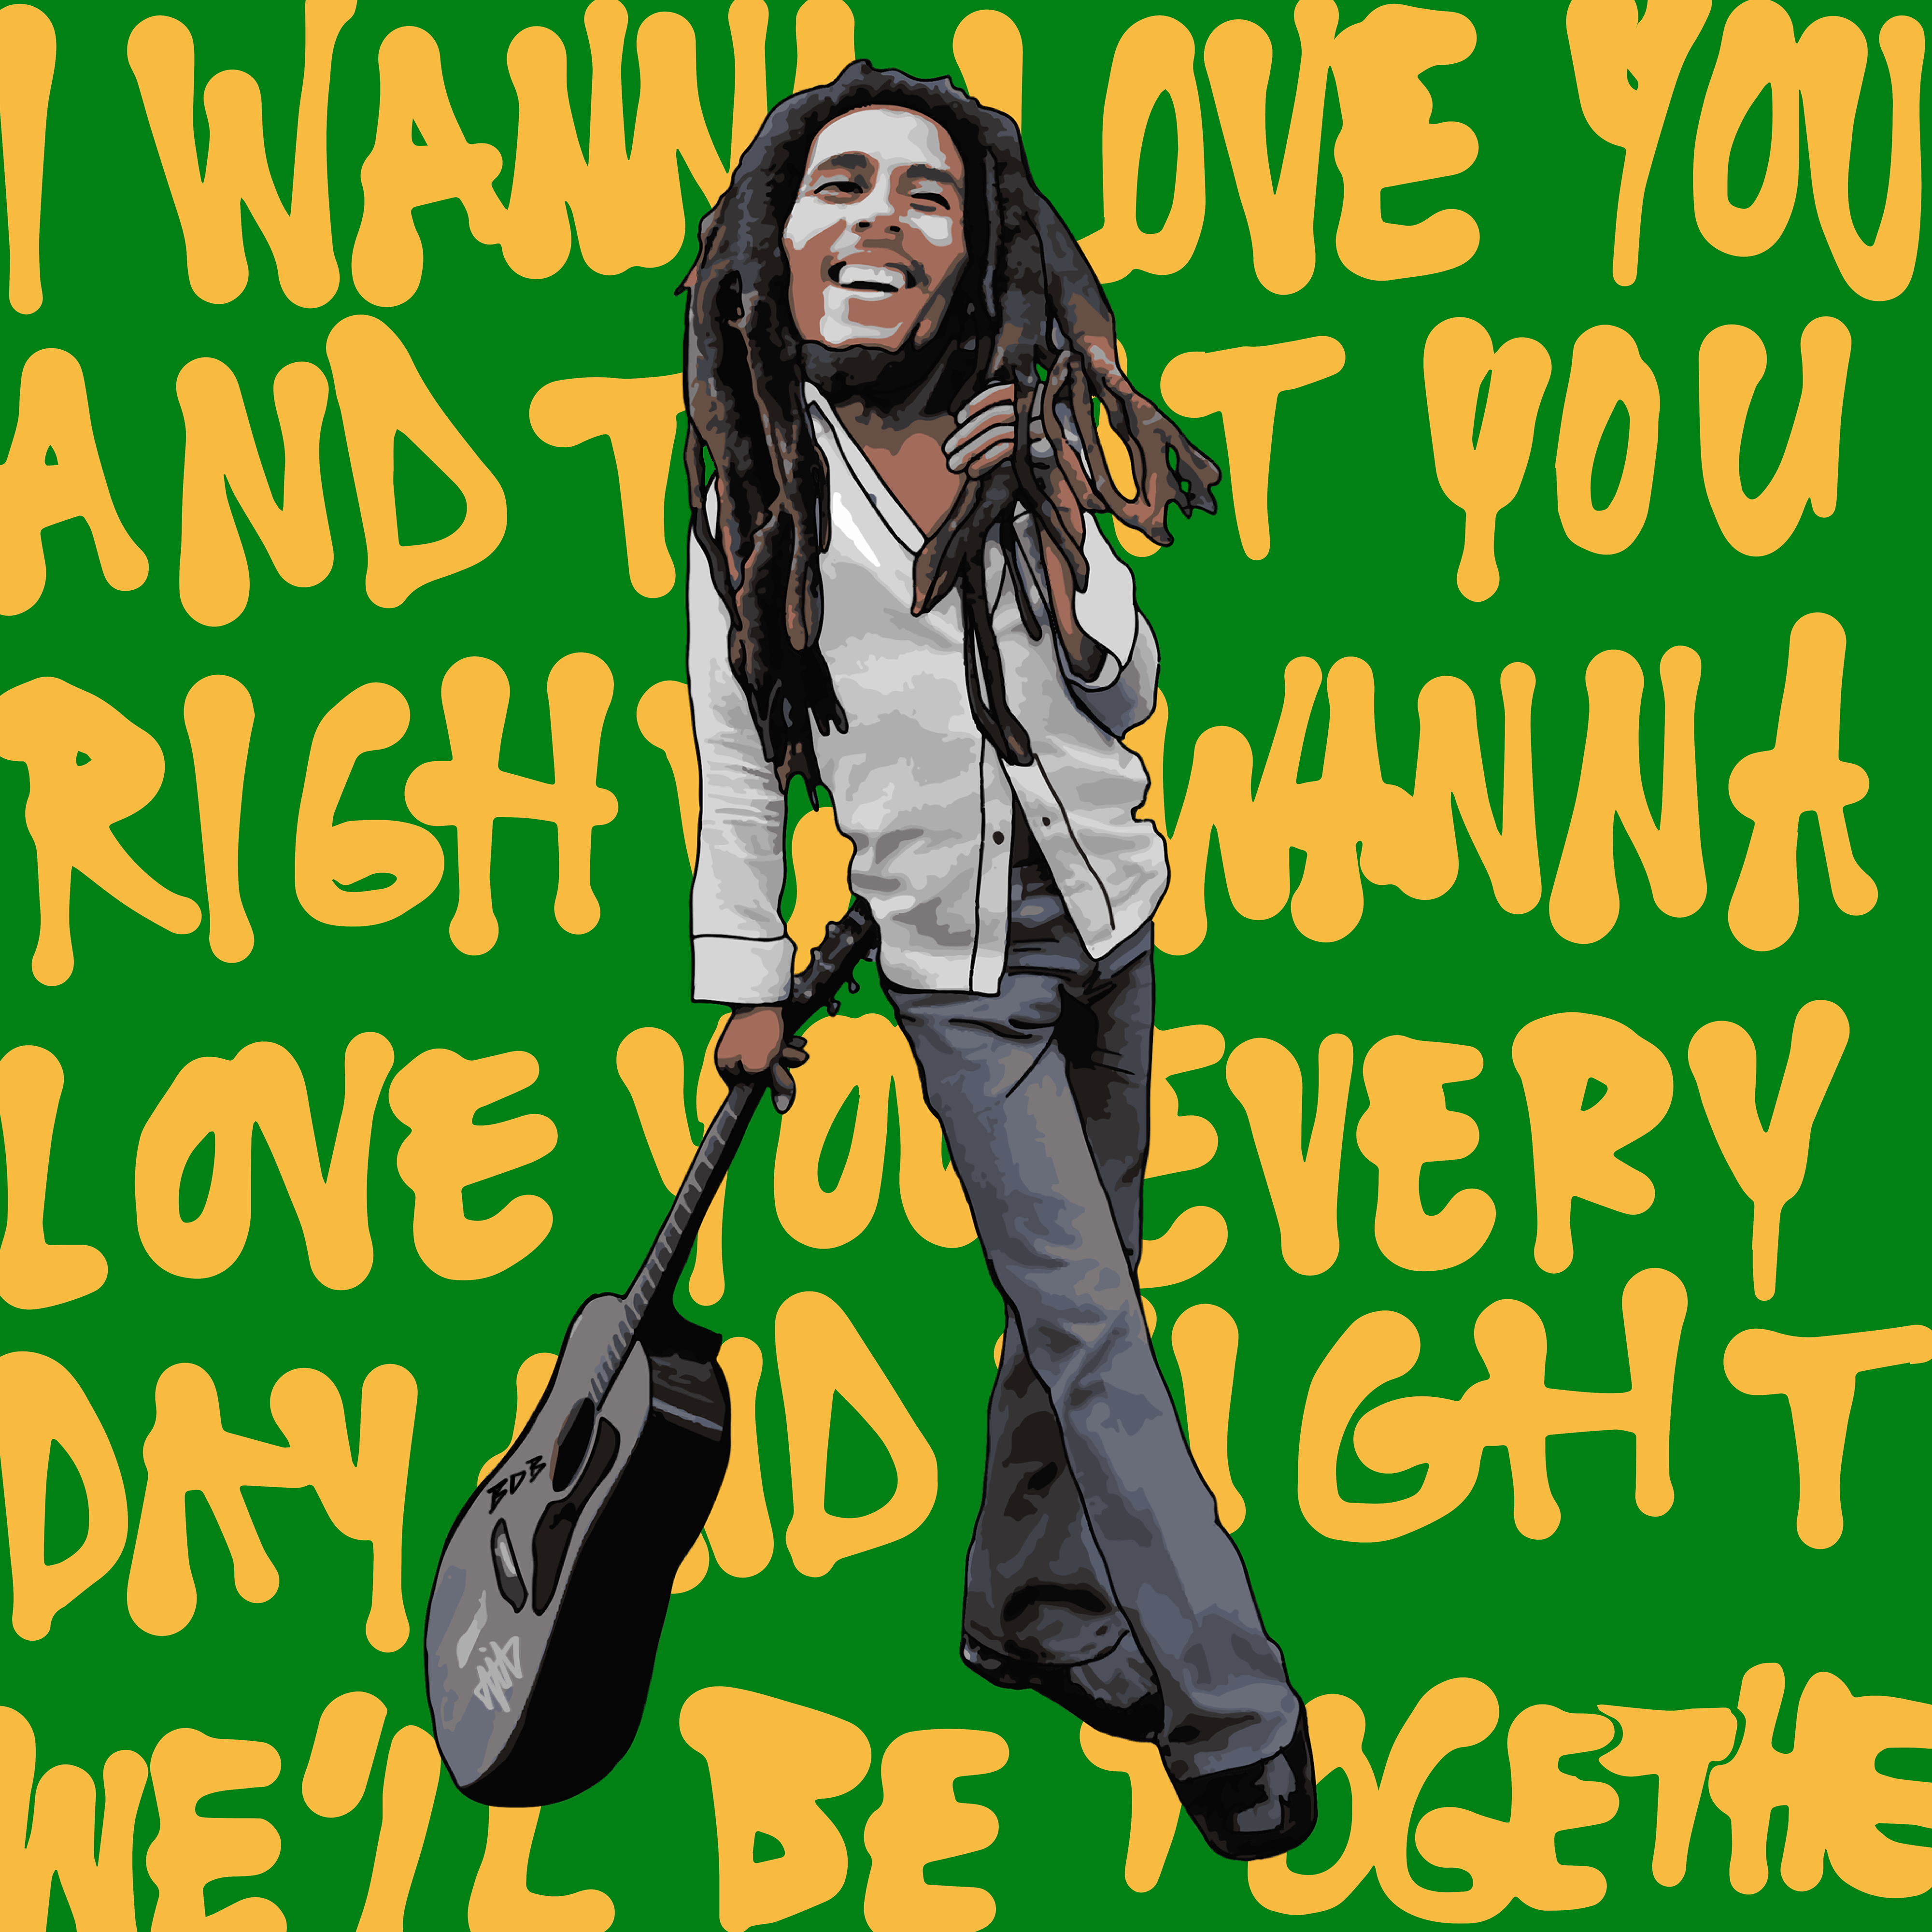 Is the love bob marley download album